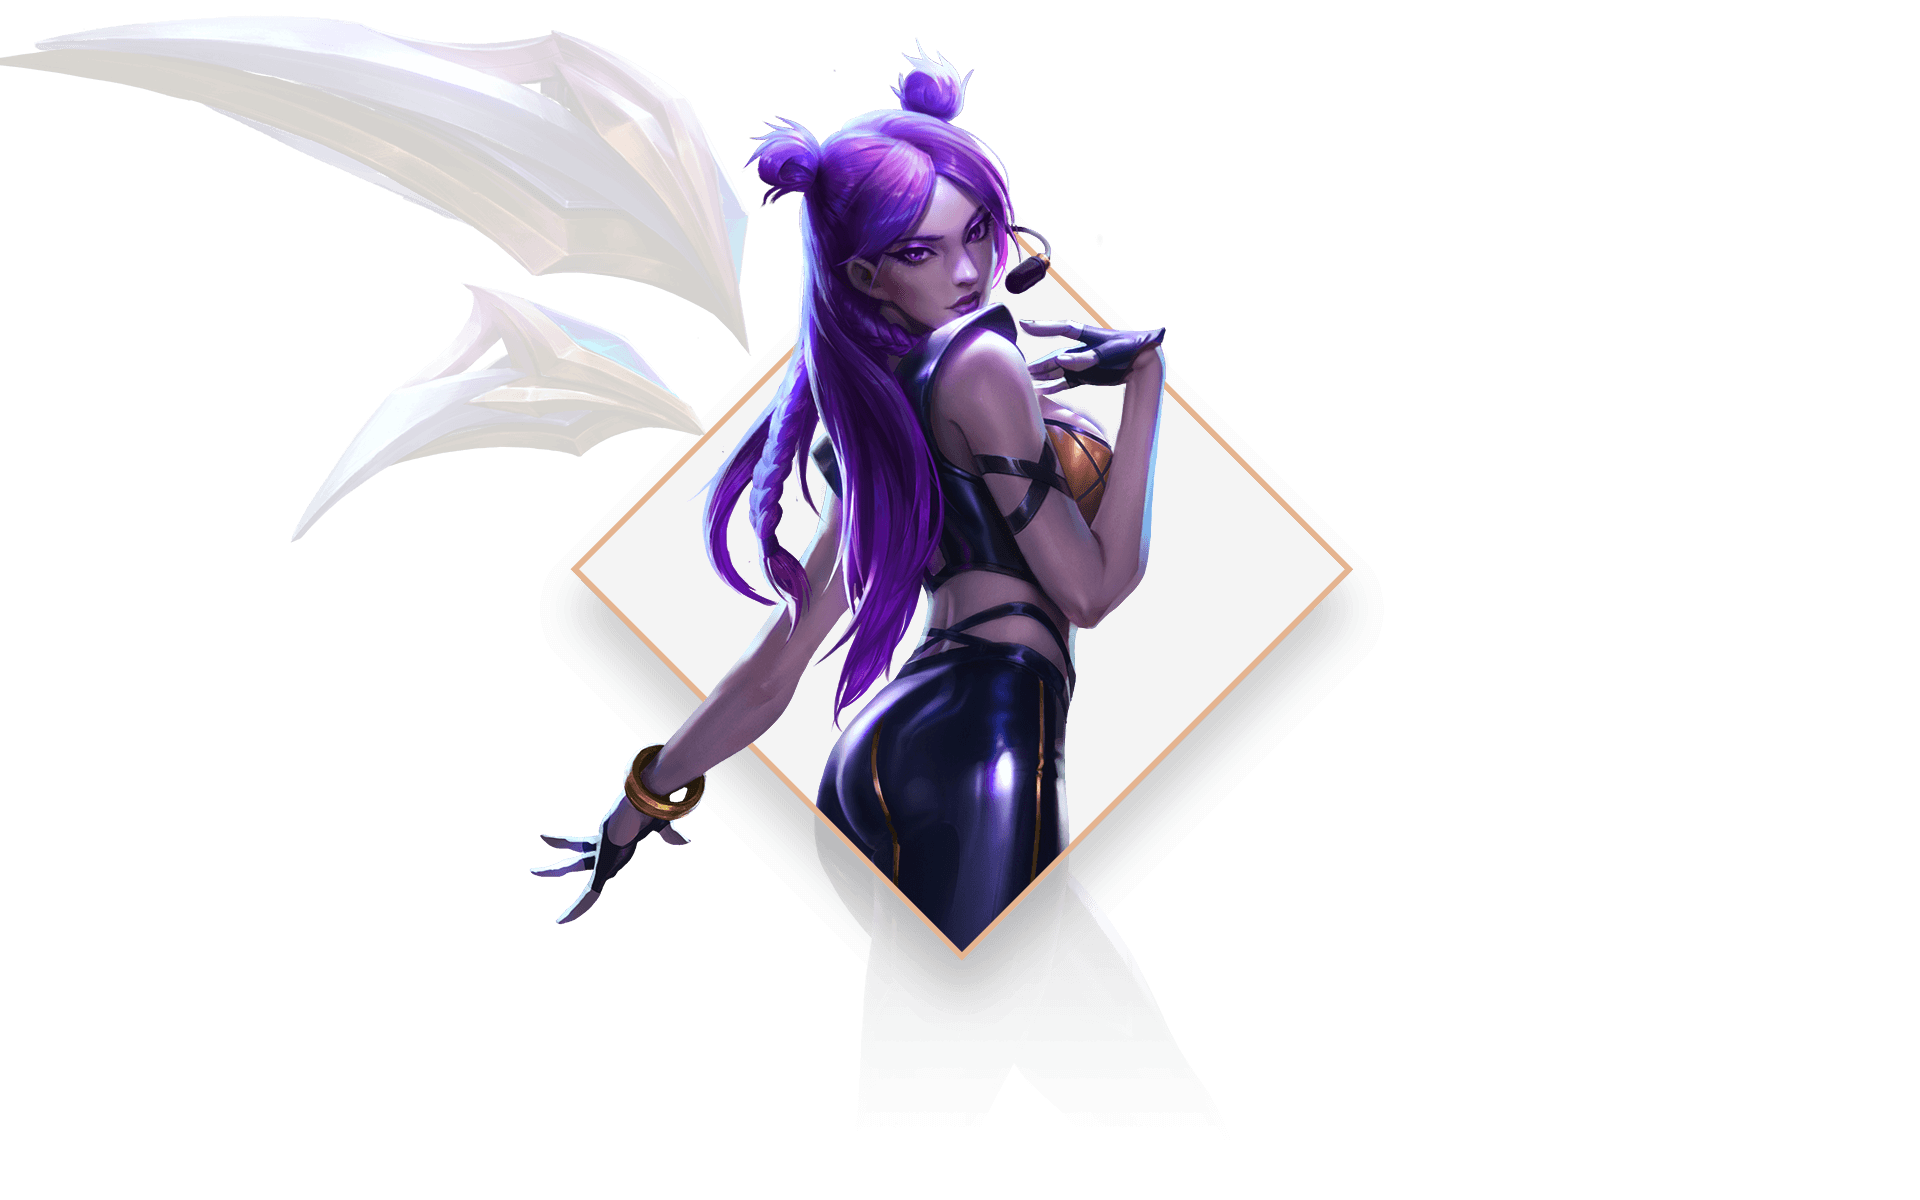 https://universe-meeps.leagueoflegends.com/v1/assets/images/kda/kda-splash-cropped-kaisa.png